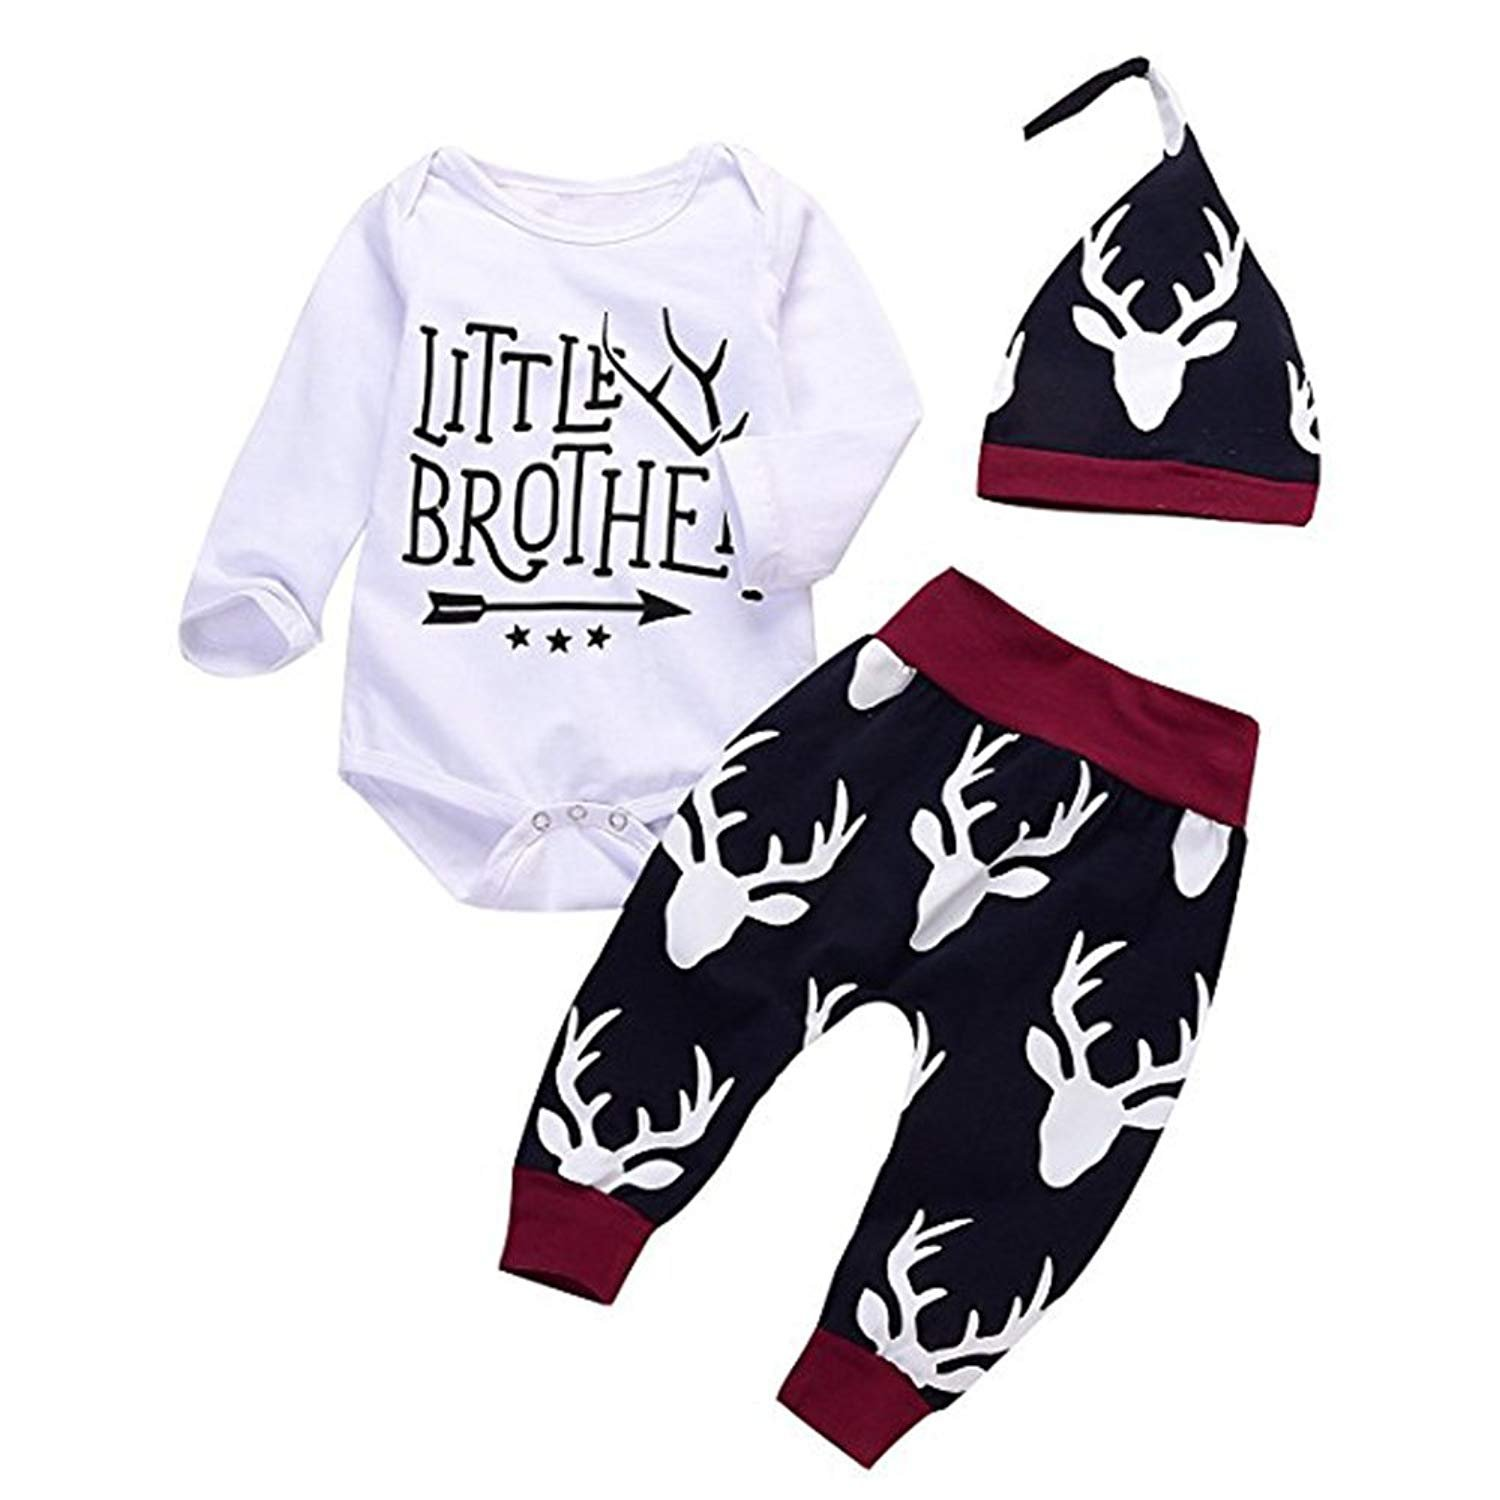 0e53c2c4d5e6b Newborn Infant Baby Boy Girl Christmas Outfits Set Little Brother Romper  Long Pants Hat 3PC Clothes